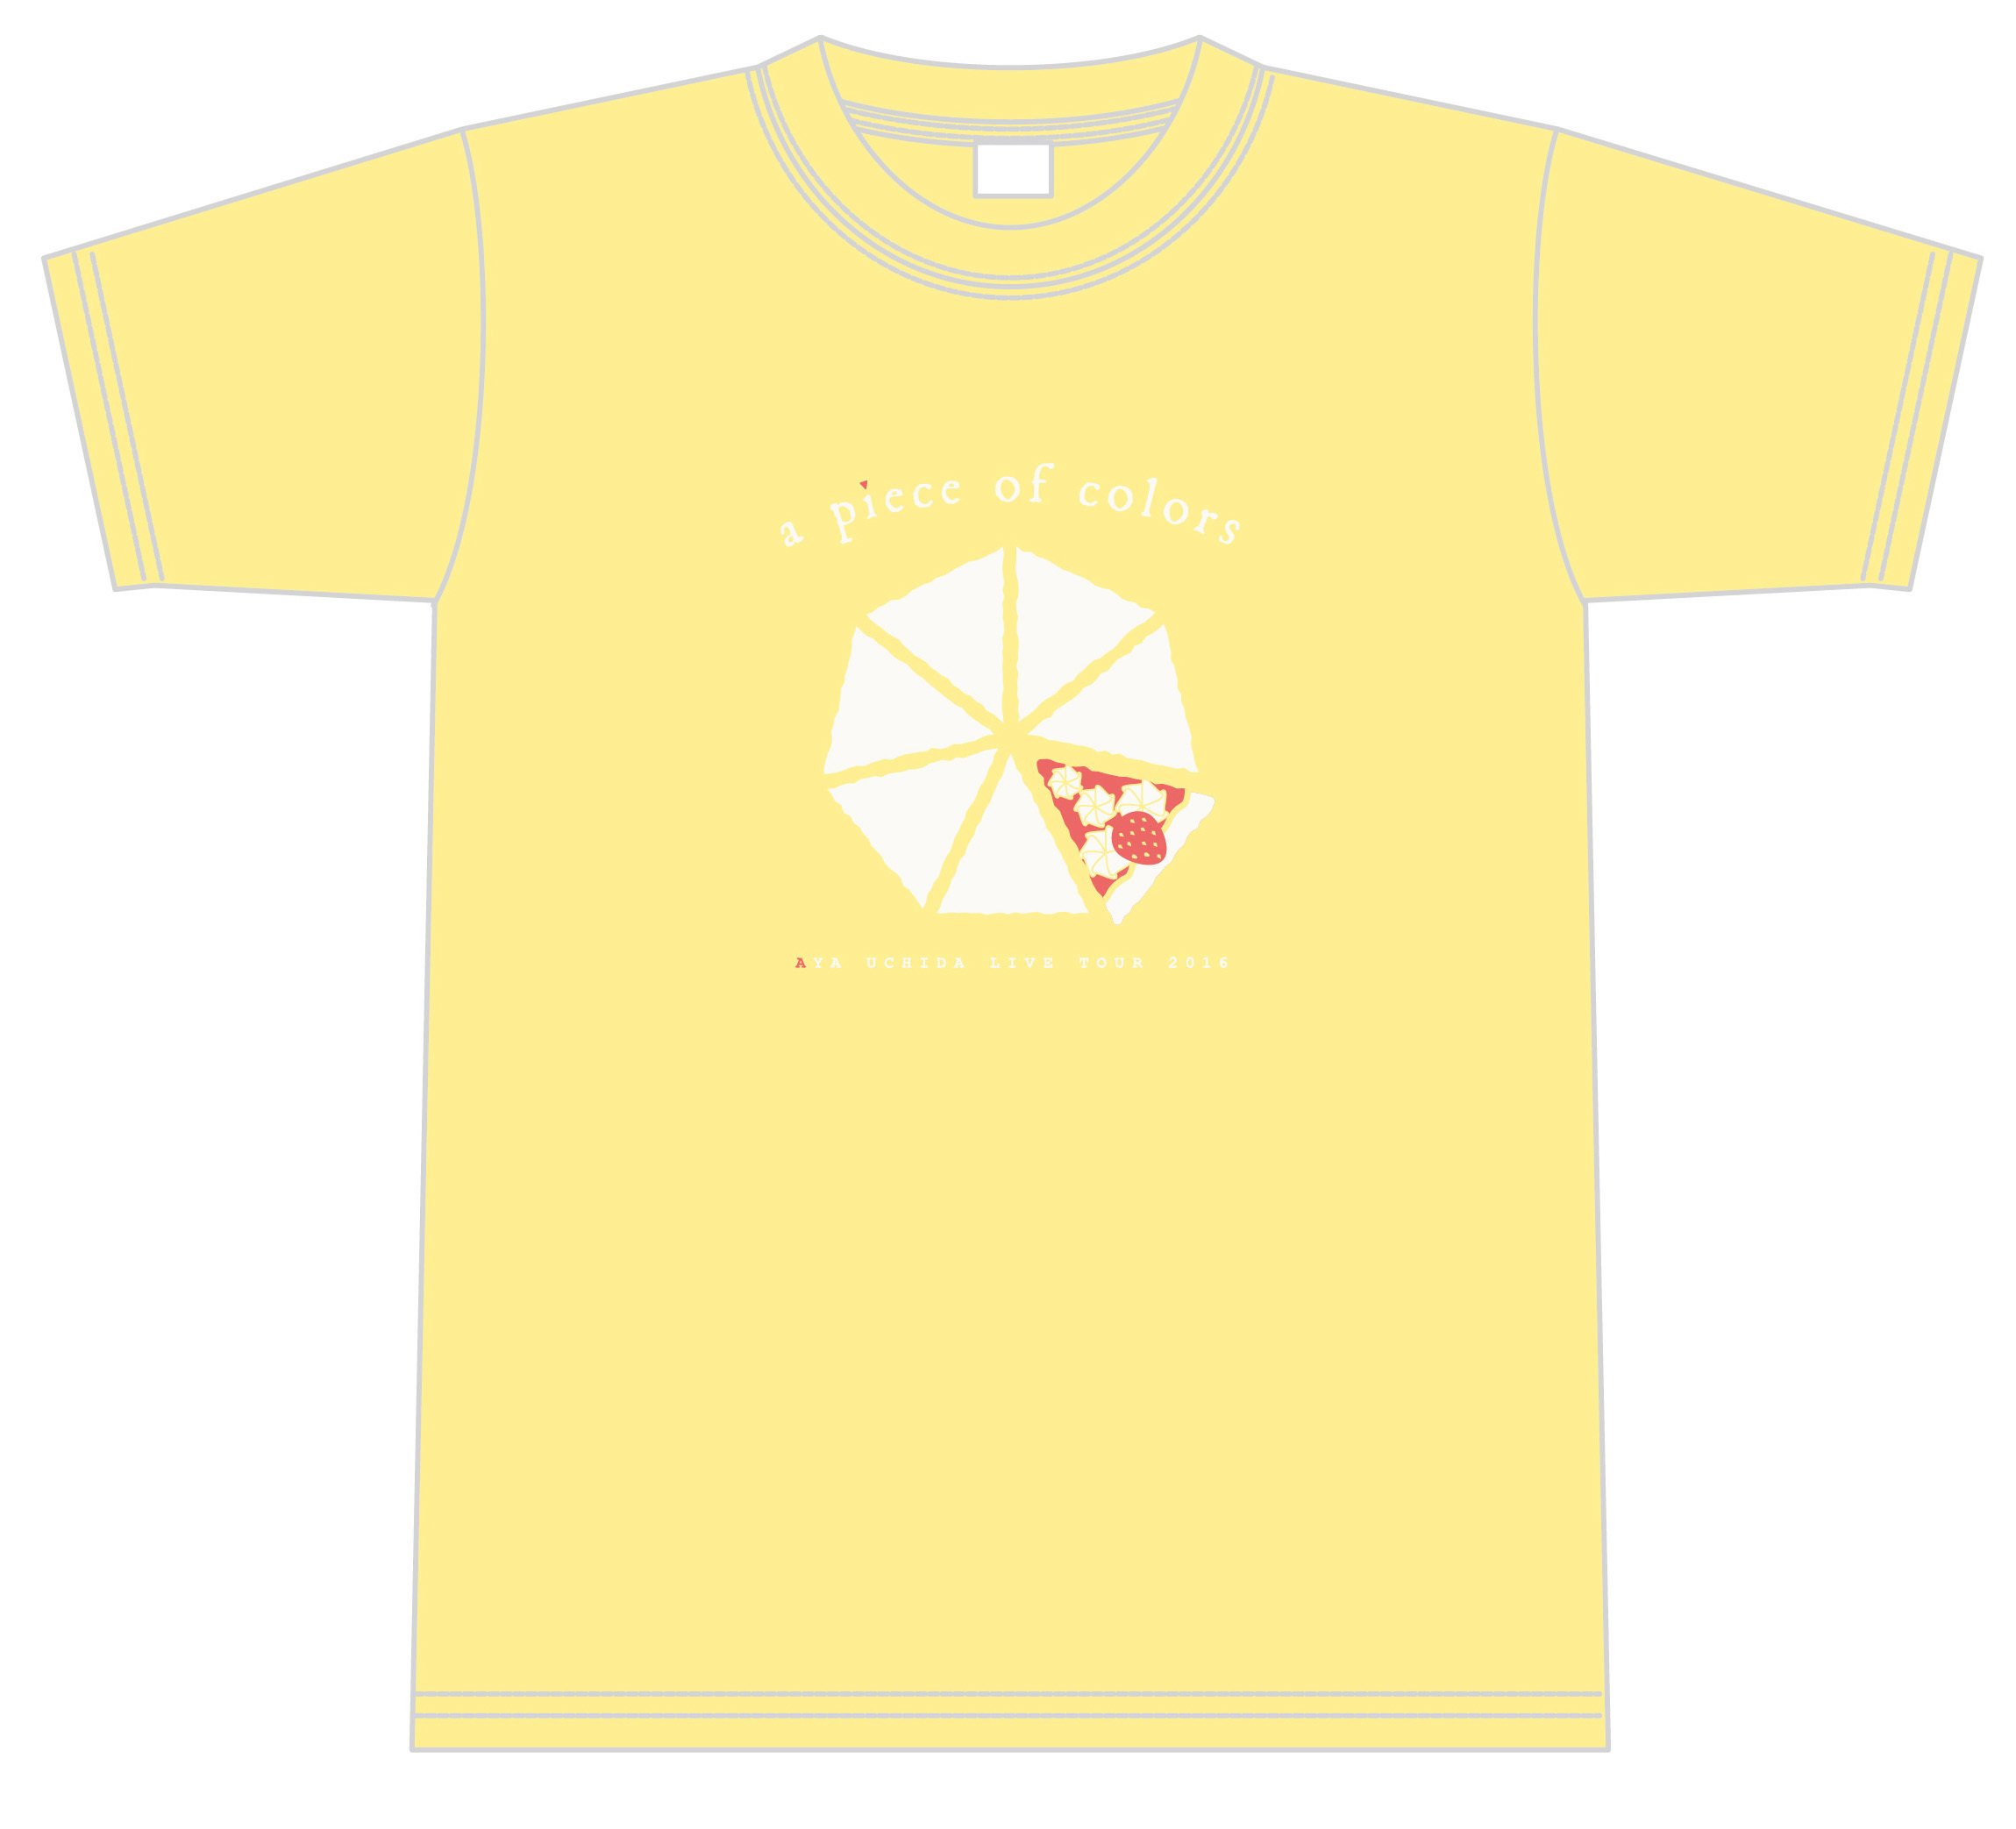 AYA UCHIDA LIVE TOUR 2016 ~a piece of colors~ Tシャツ(仙台ver.)